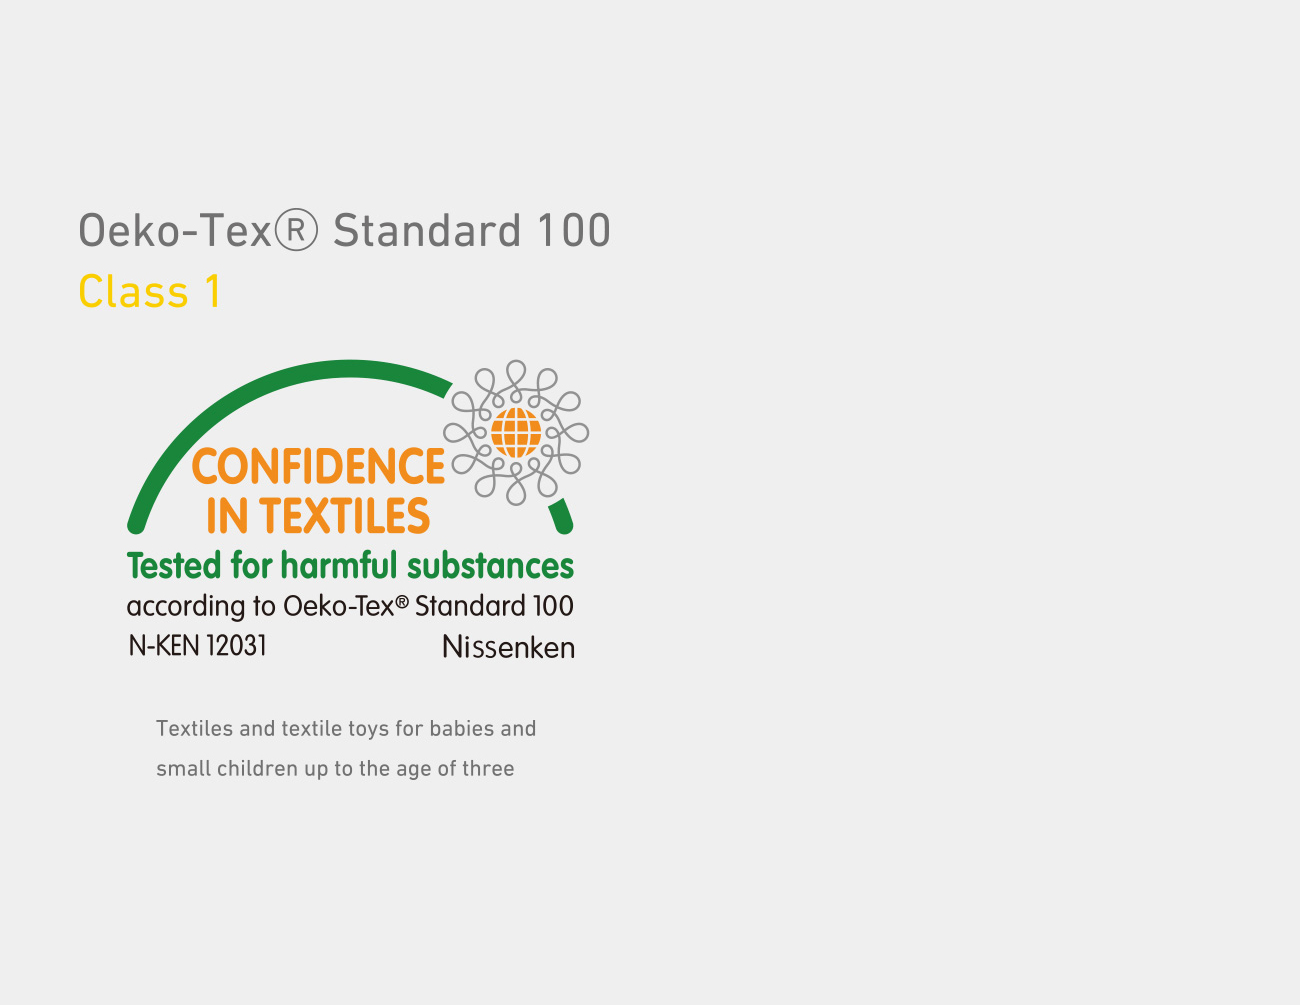 THE GLOBAL STANDARD FOR SAFETY: OEKO-TEX Standard 100